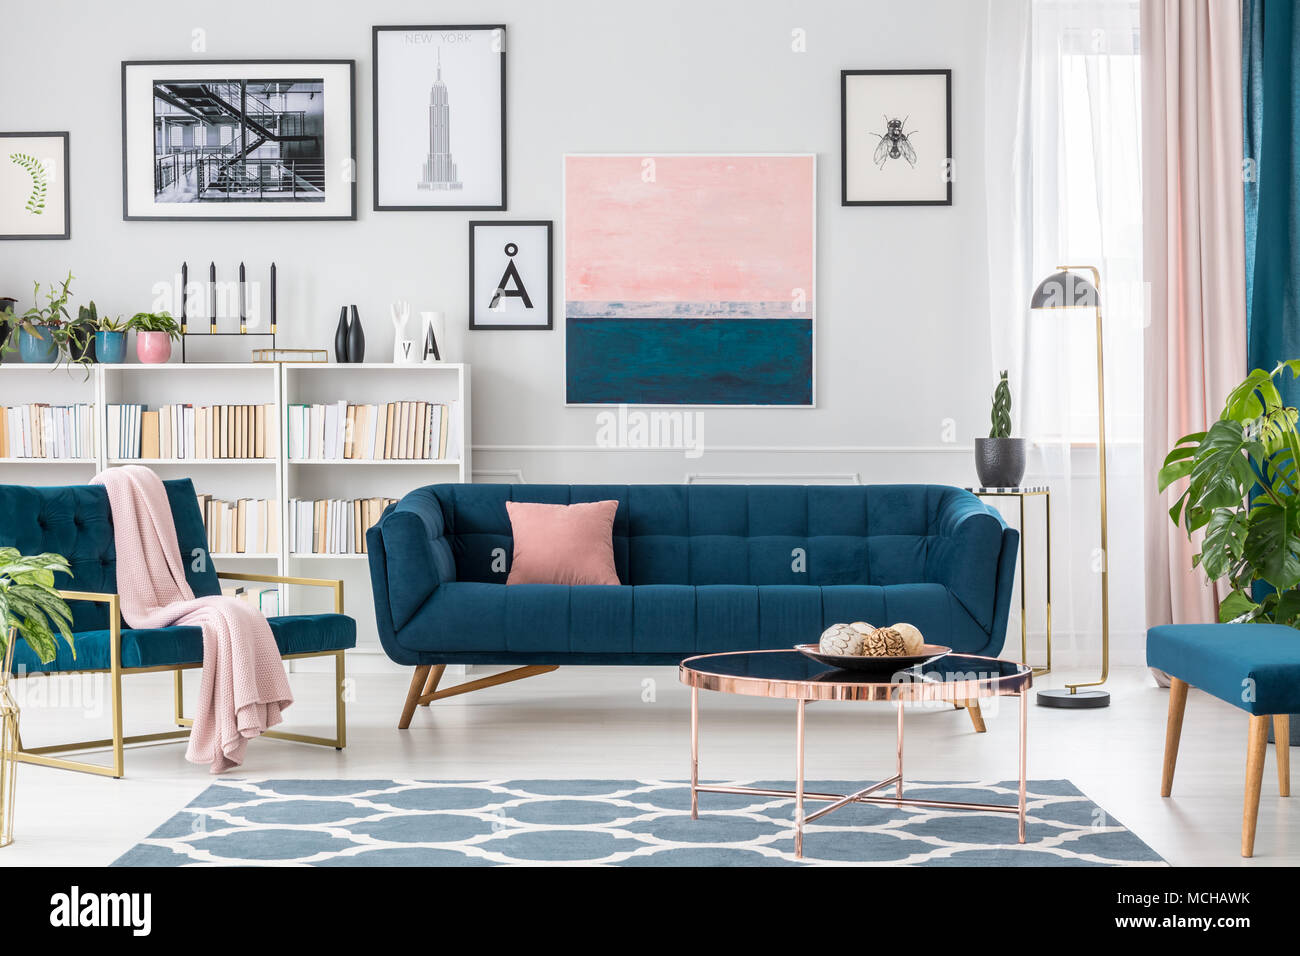 contemporary living room art what size recessed lights for modern interior with blue sofa rug collection and pink details